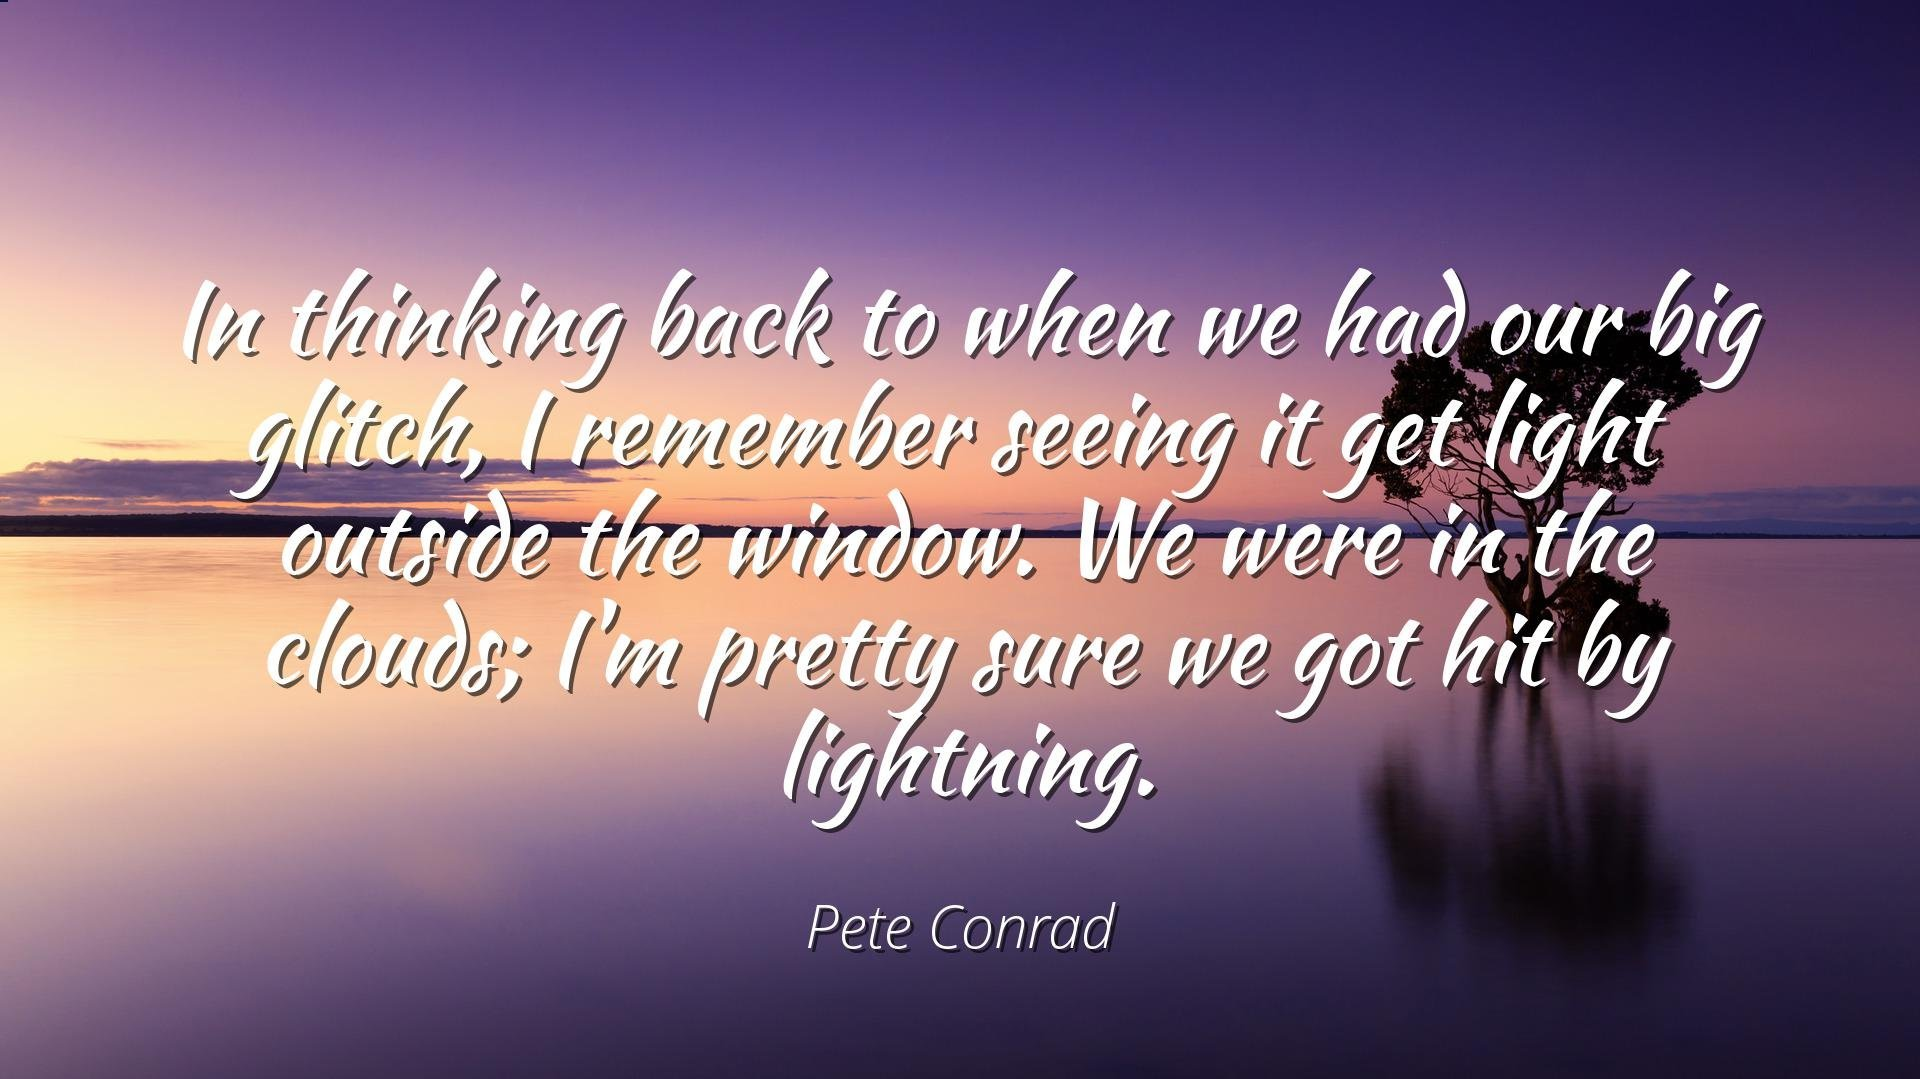 Pete Conrad - Famous Quotes Laminated POSTER PRINT 24x20 - In thinking back to when we had our big glitch, I remember seeing it get light outside the window. We were in the clouds; I'm pretty sure we